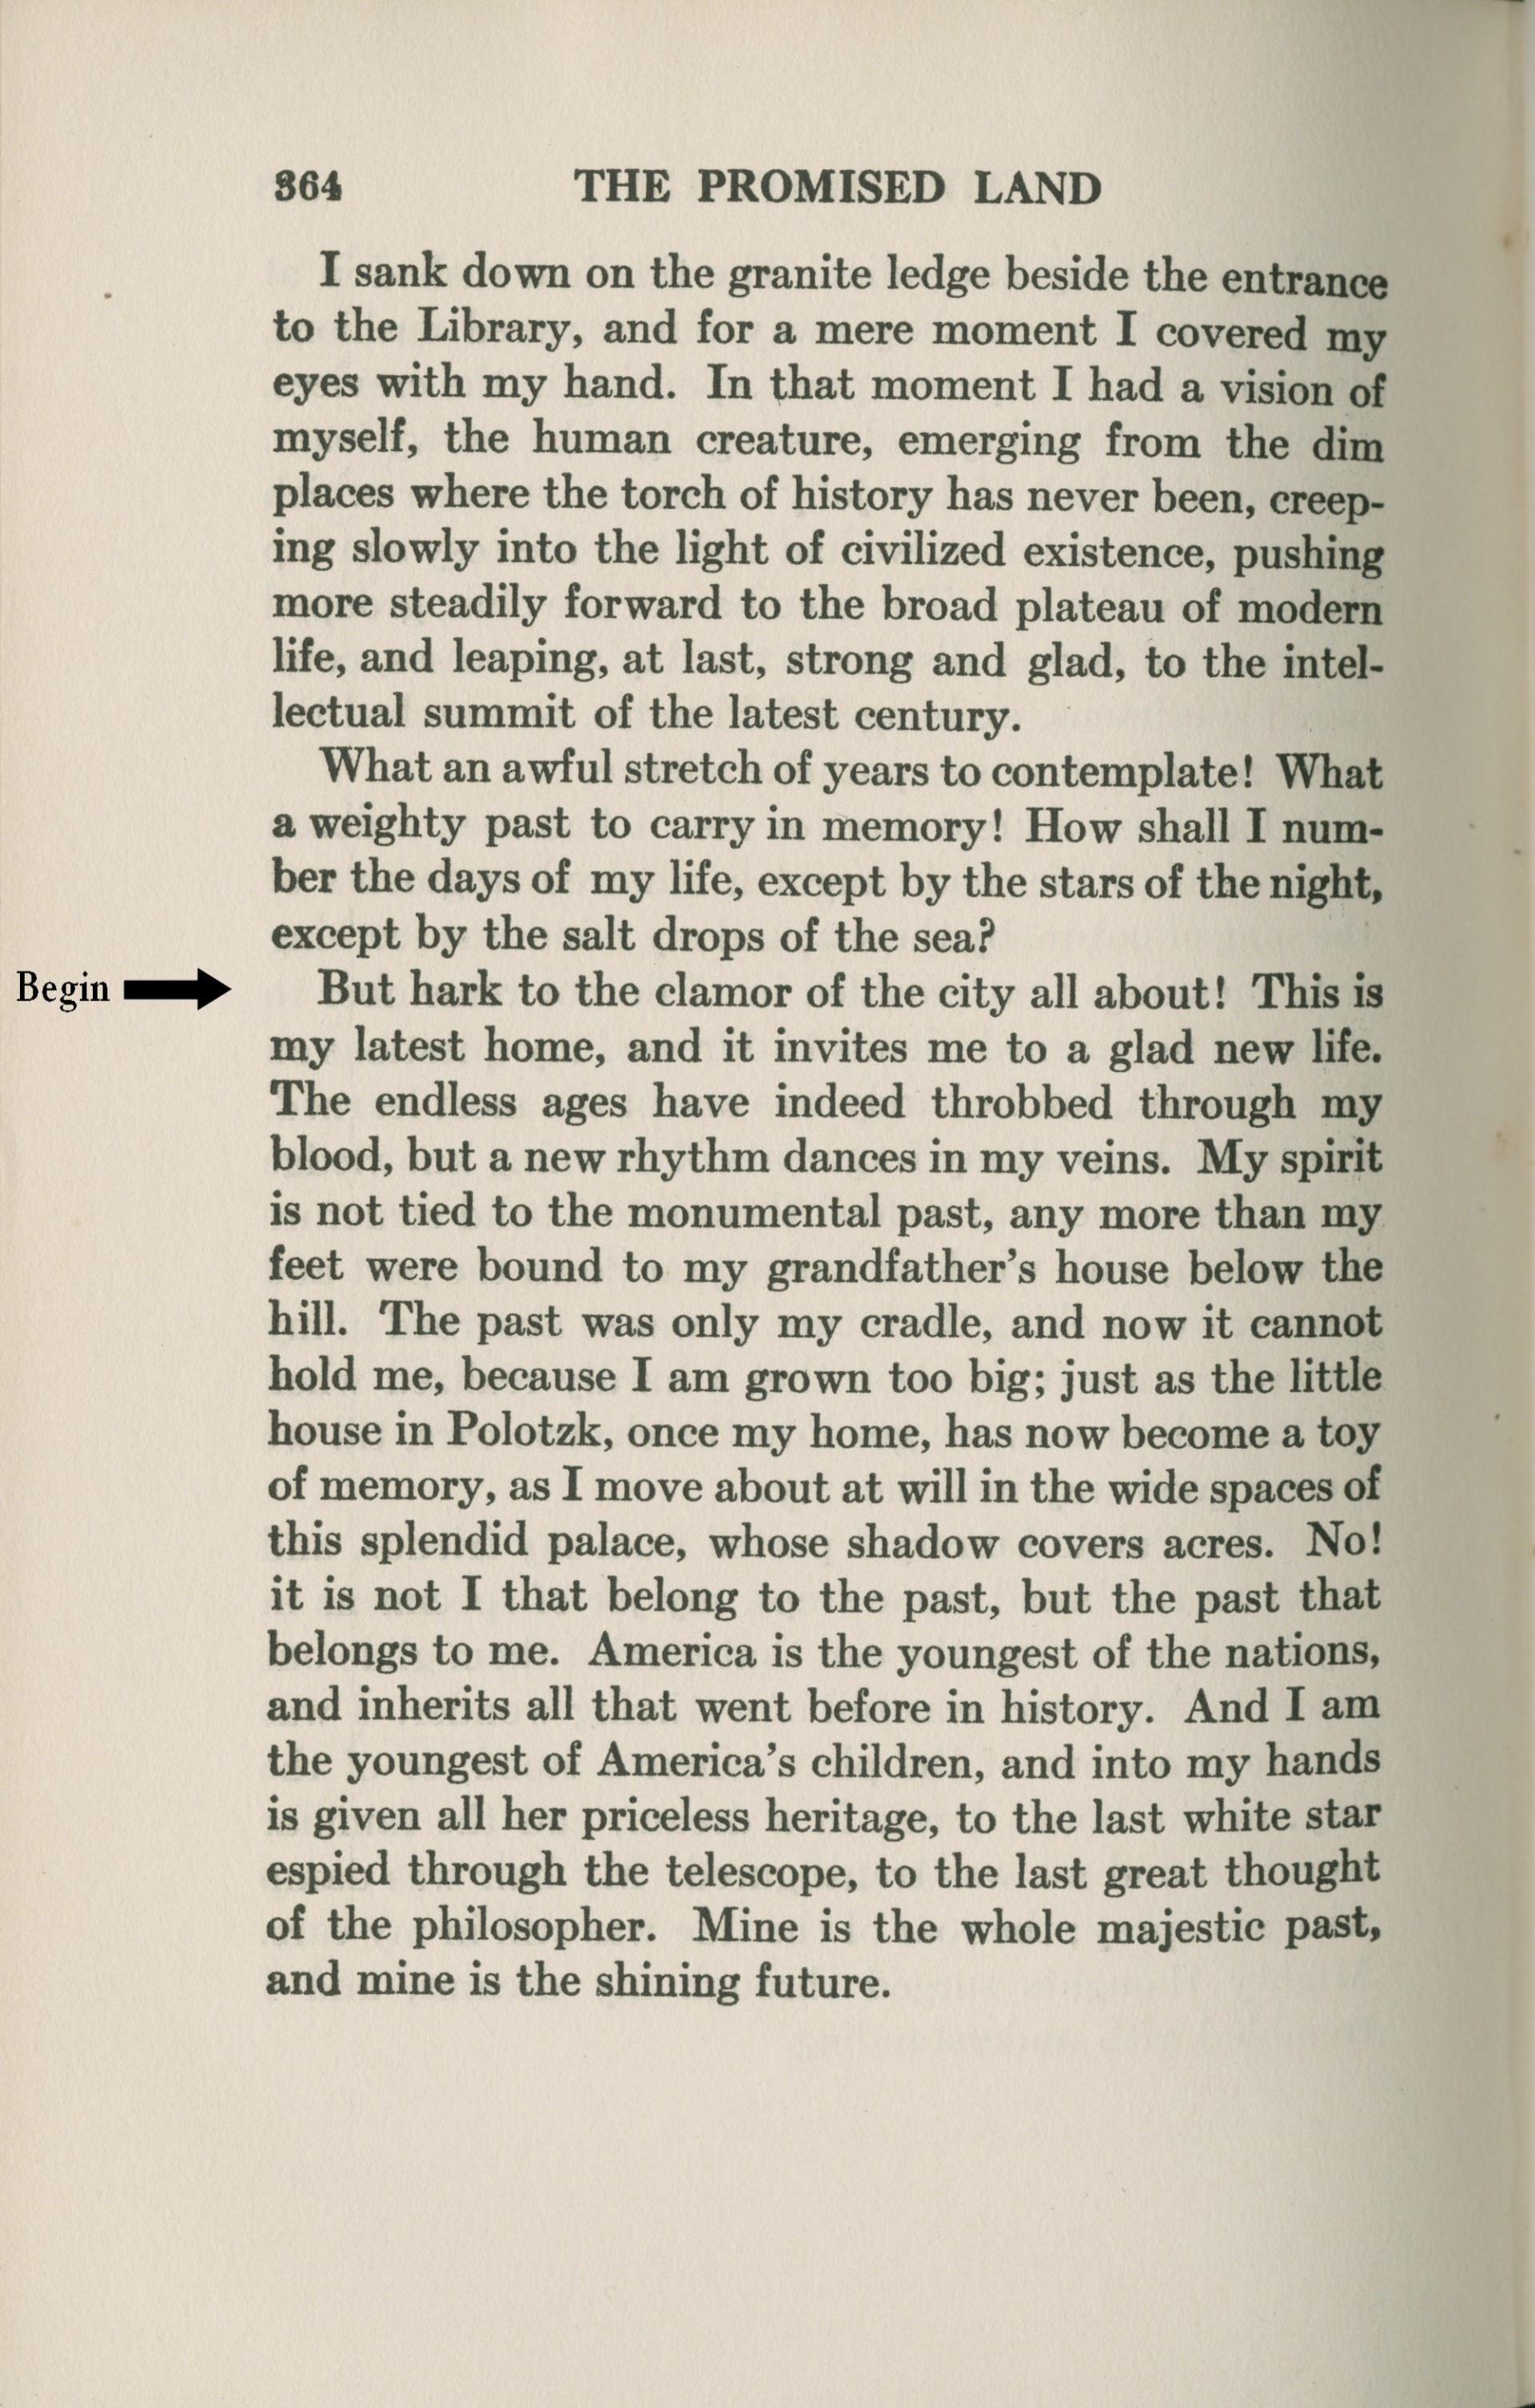 002 Antin Promised Land Conclusion  P364 Mod Essay Example On Fearsome Immigration1920